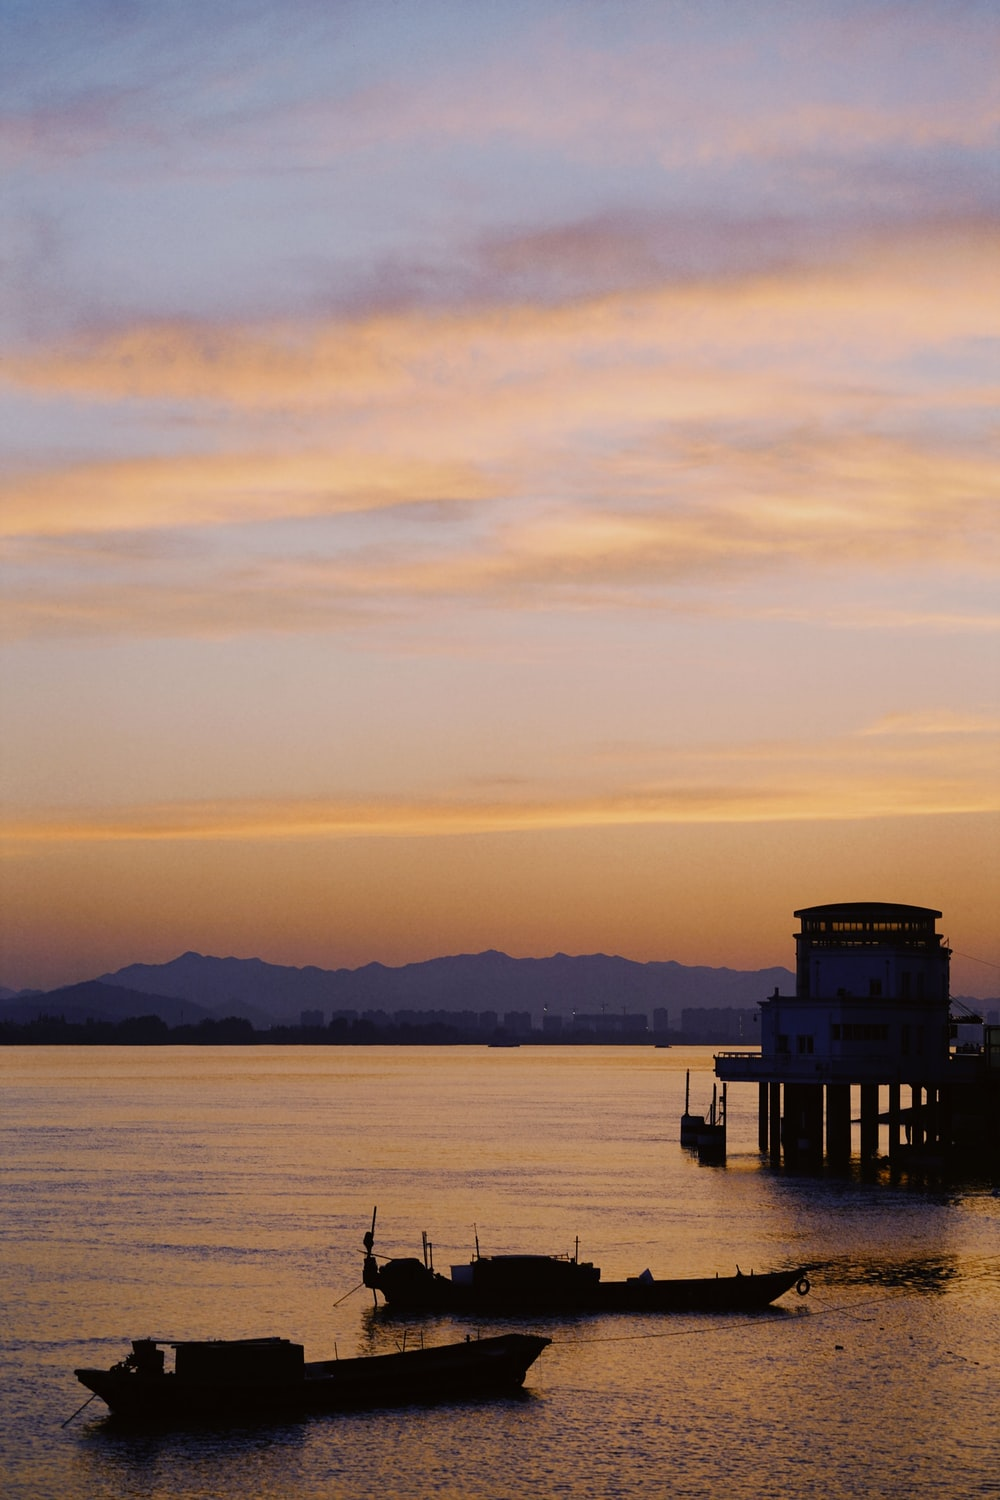 silhouette of a dock on a body of water during sunset